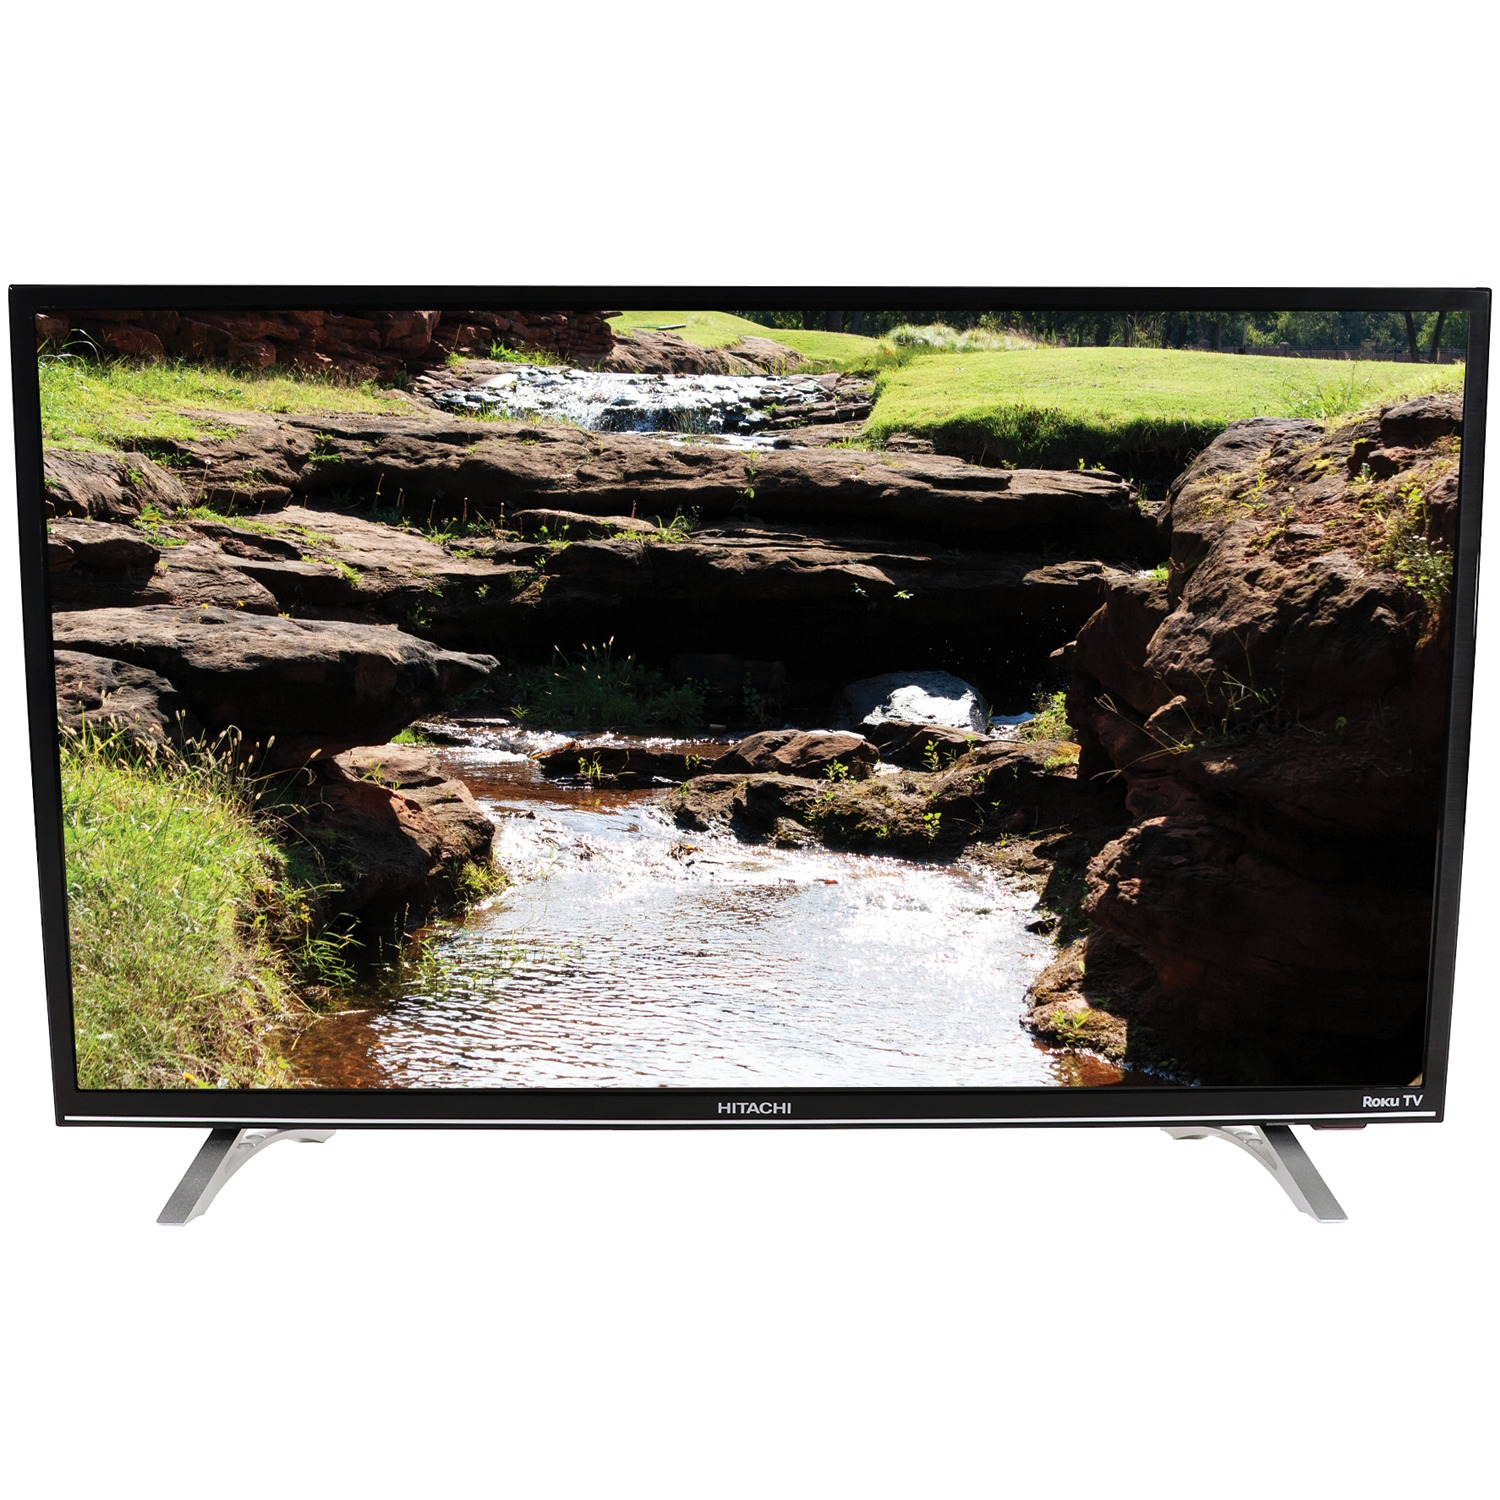 "Hitachi 32R20 32"" 720p LCD HDTV with Roku®"